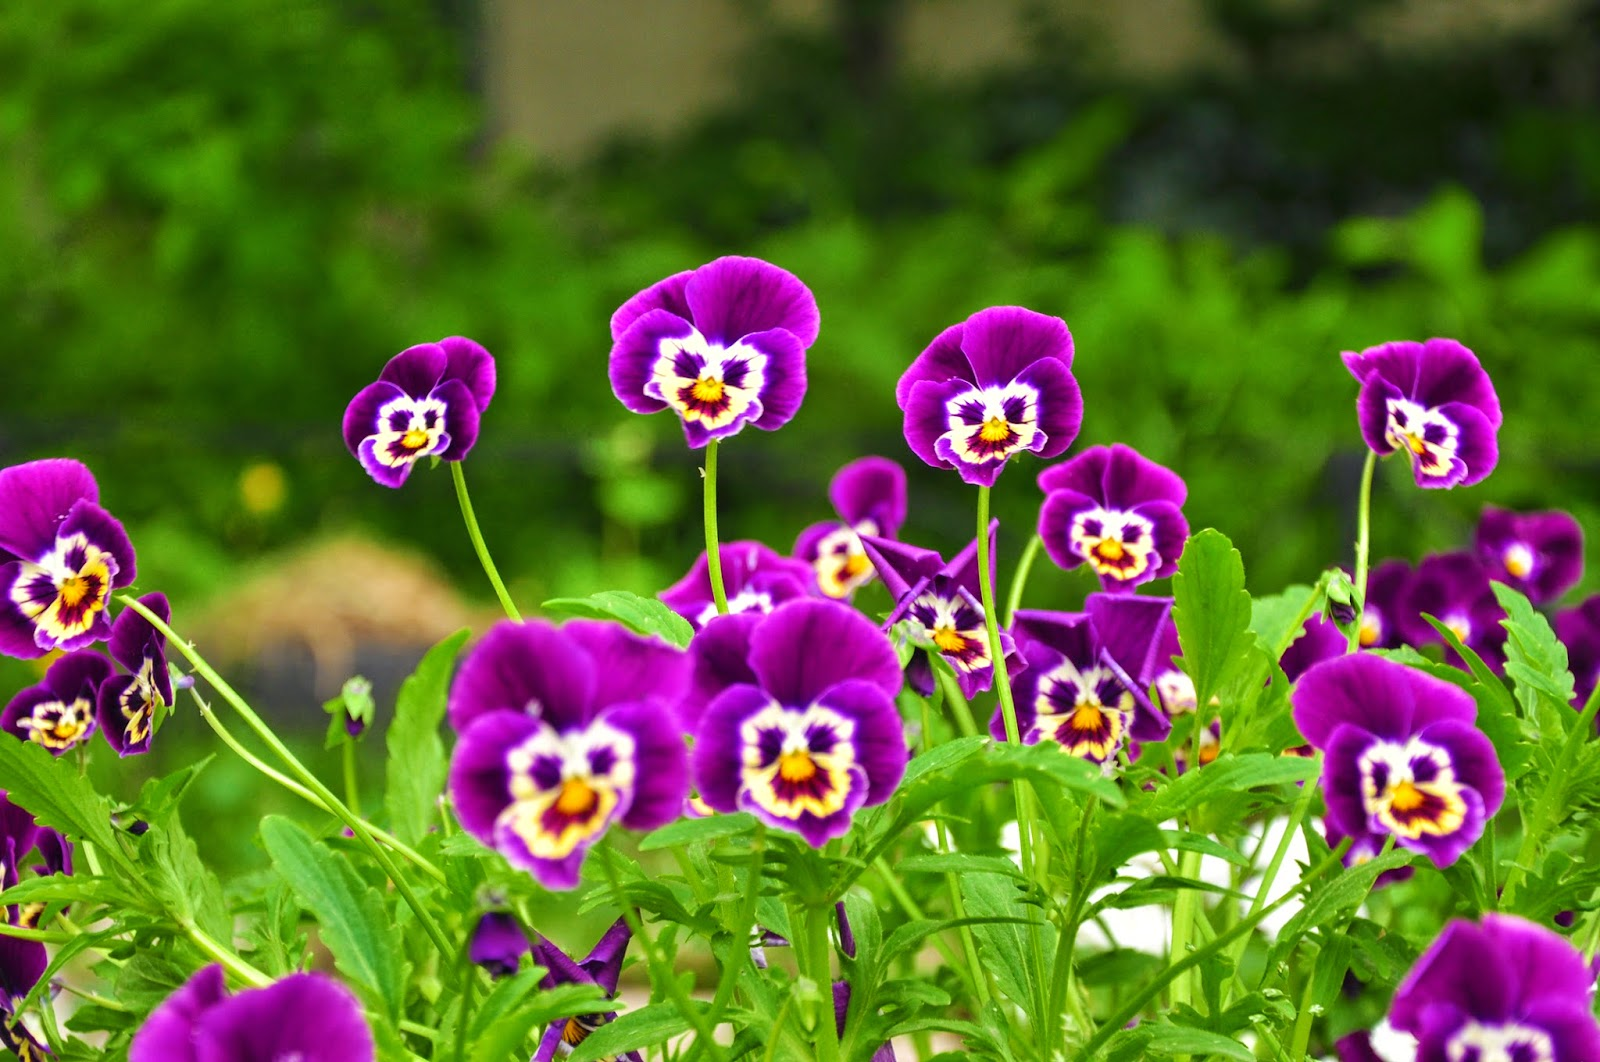 Chidinma inspirations flowers with faces human shaped bodies flowers with faces human shaped bodies izmirmasajfo